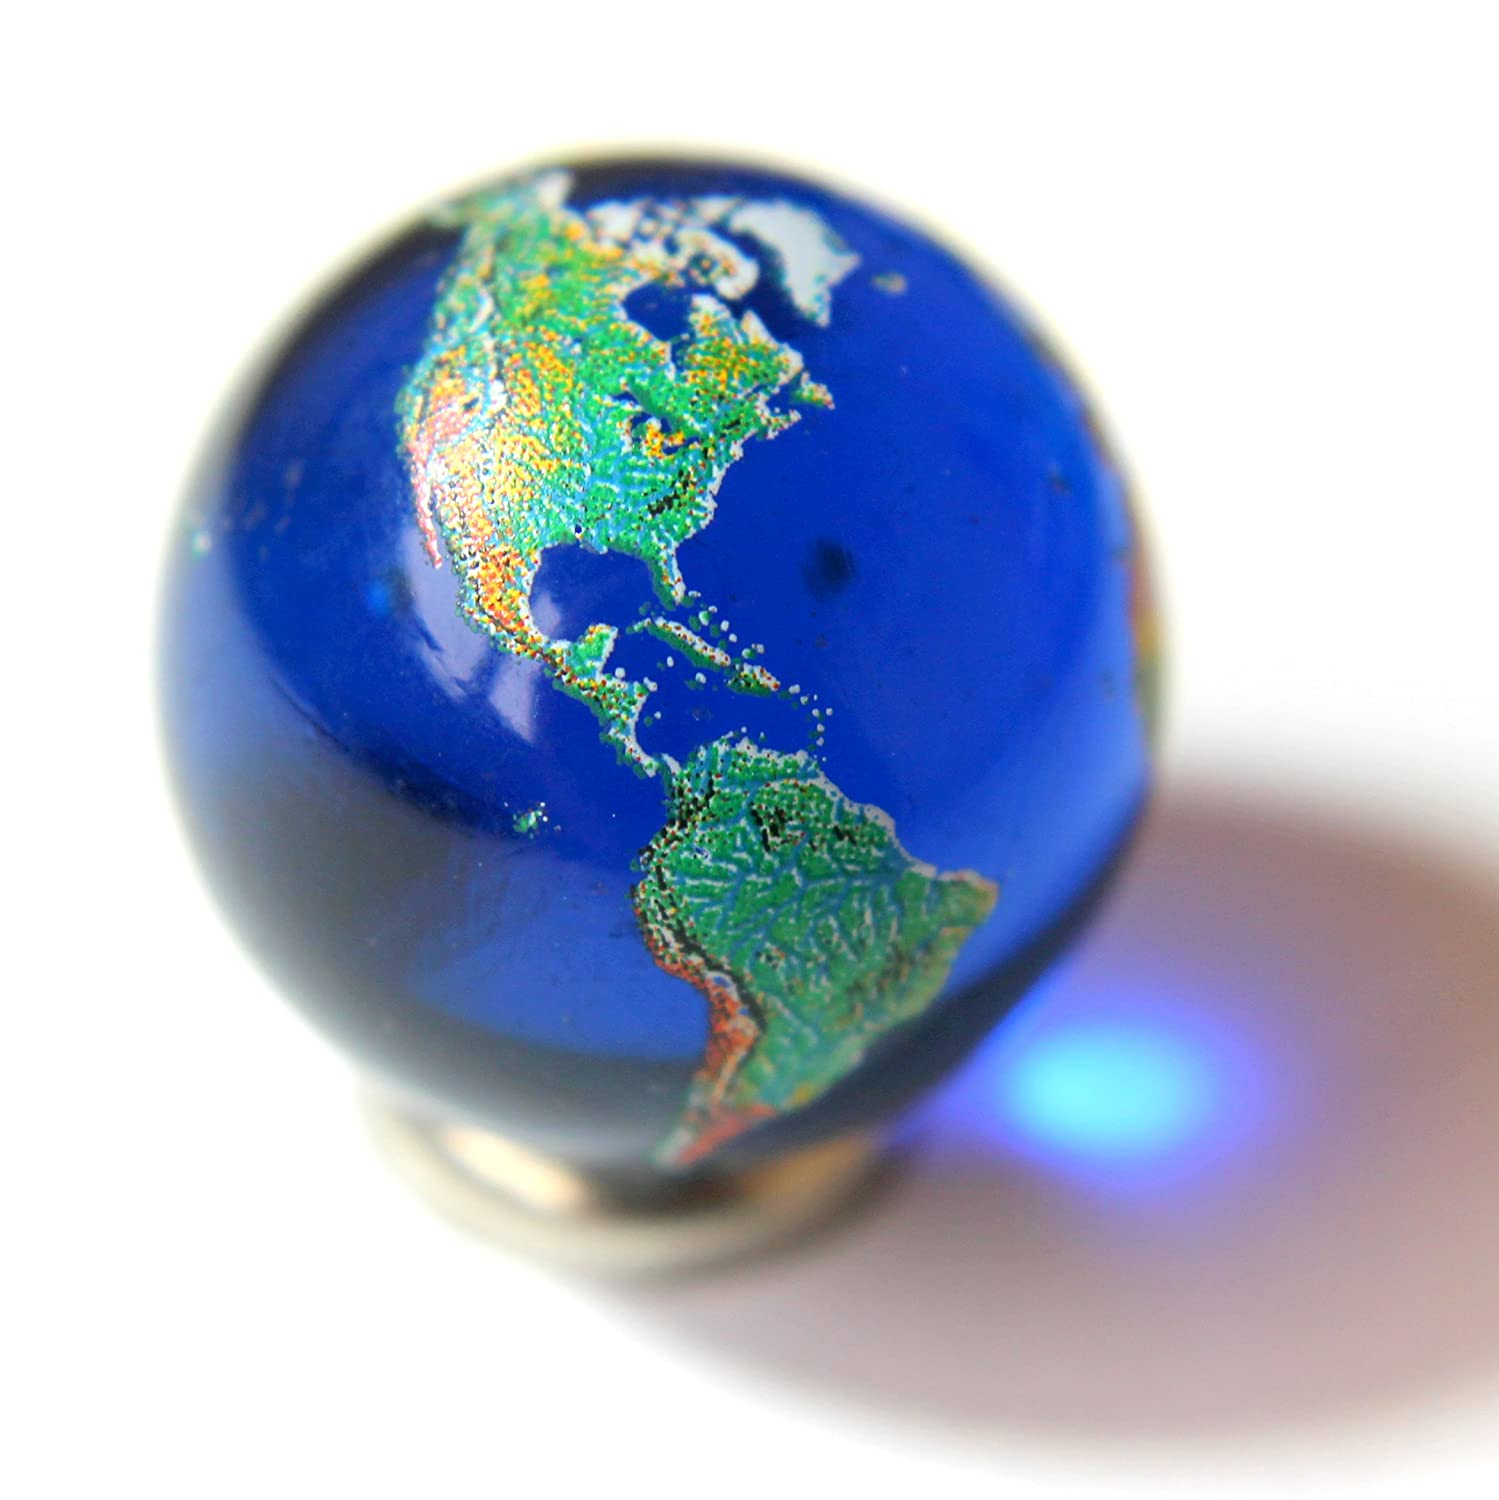 22mm Detailed Solid Glass Earth Globe Marble /& Stainless Steel Stand 0.9 Cosmic World Planet Gaea Terra